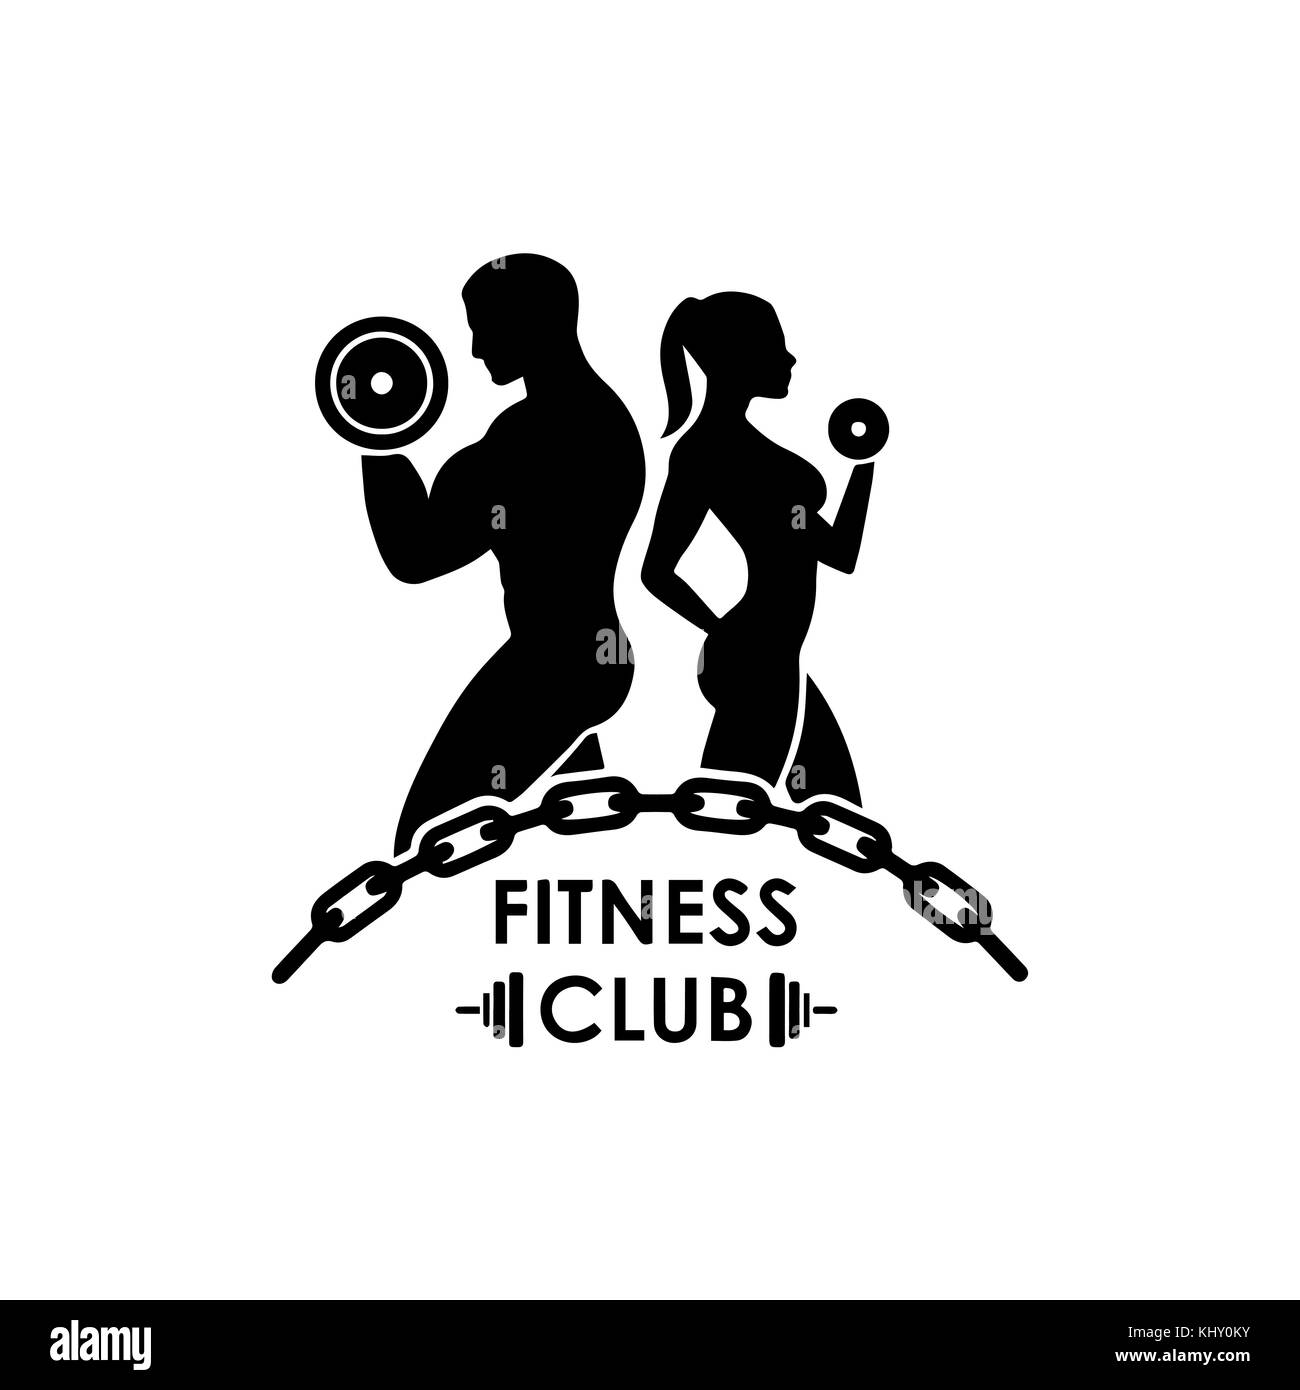 Bodybuilding Logo Stock Photos & Bodybuilding Logo Stock